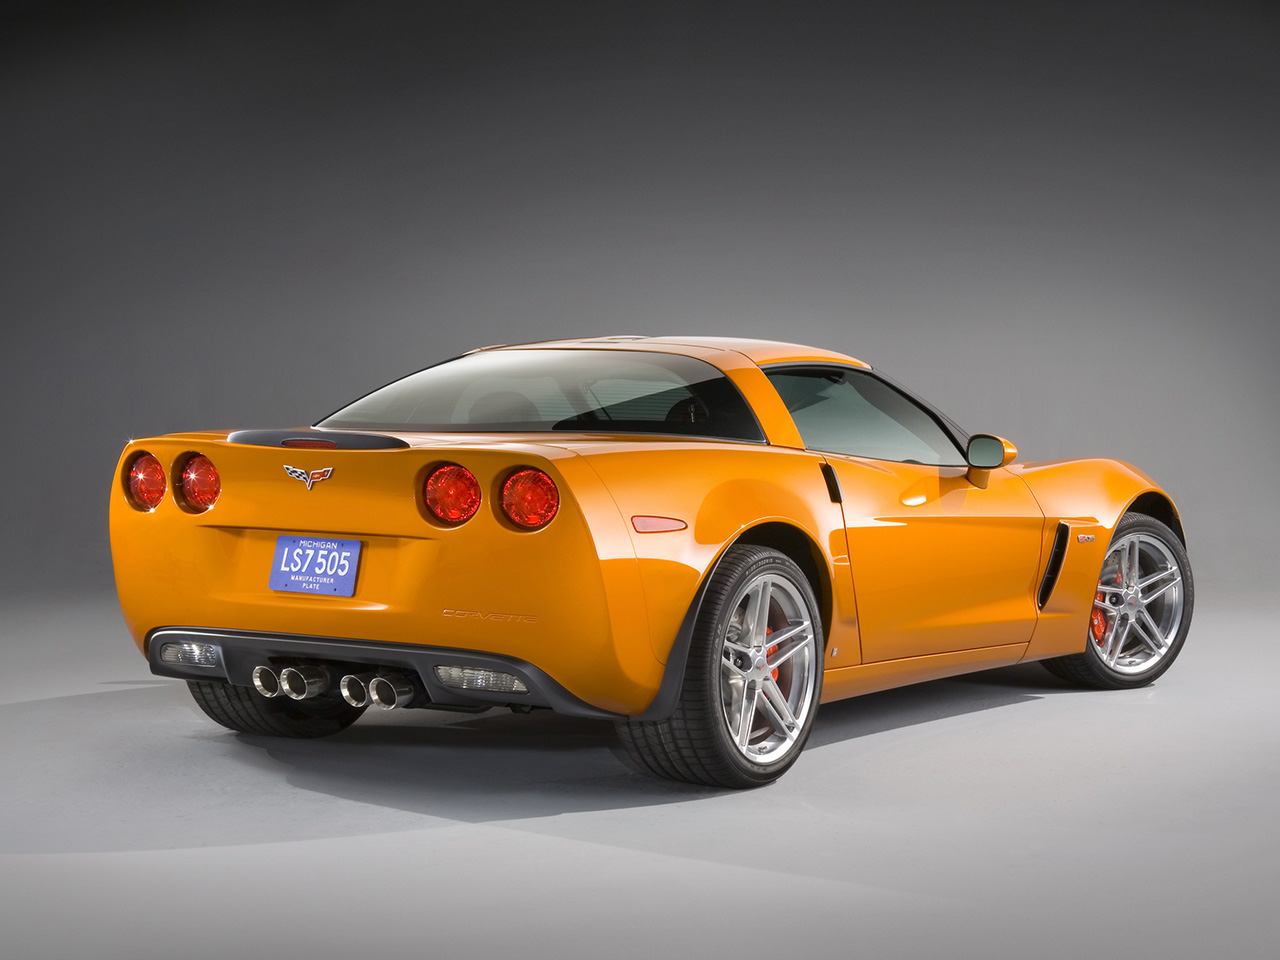 2018 Chevrolet Corvette >> 2007 Chevrolet Corvette Image. Photo 19 of 20